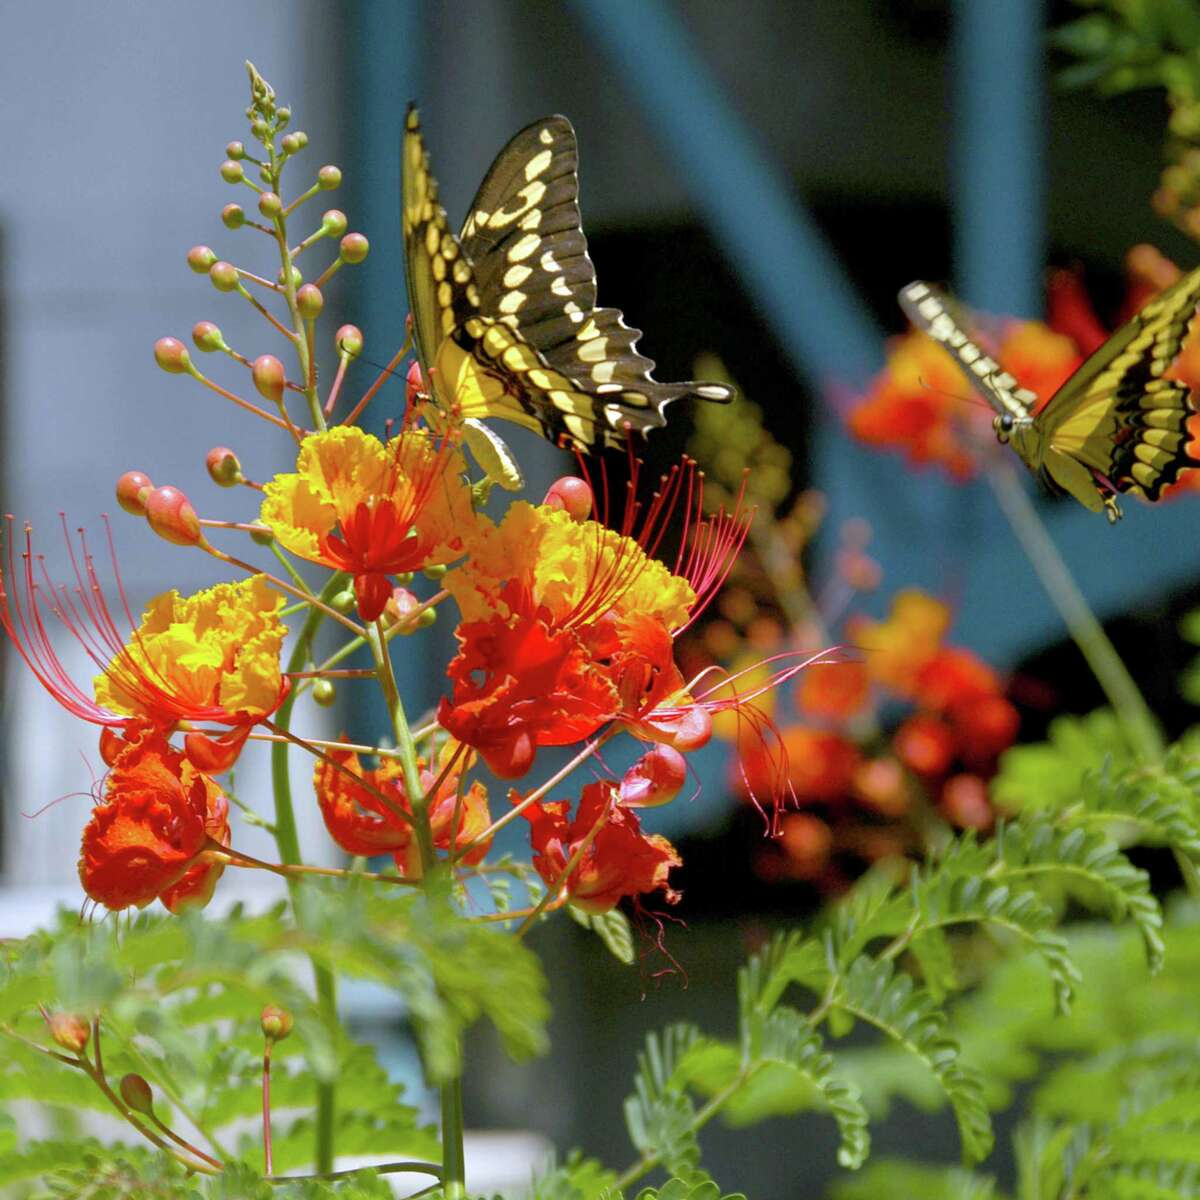 Pride of Barbados is great at attracting butterflies.